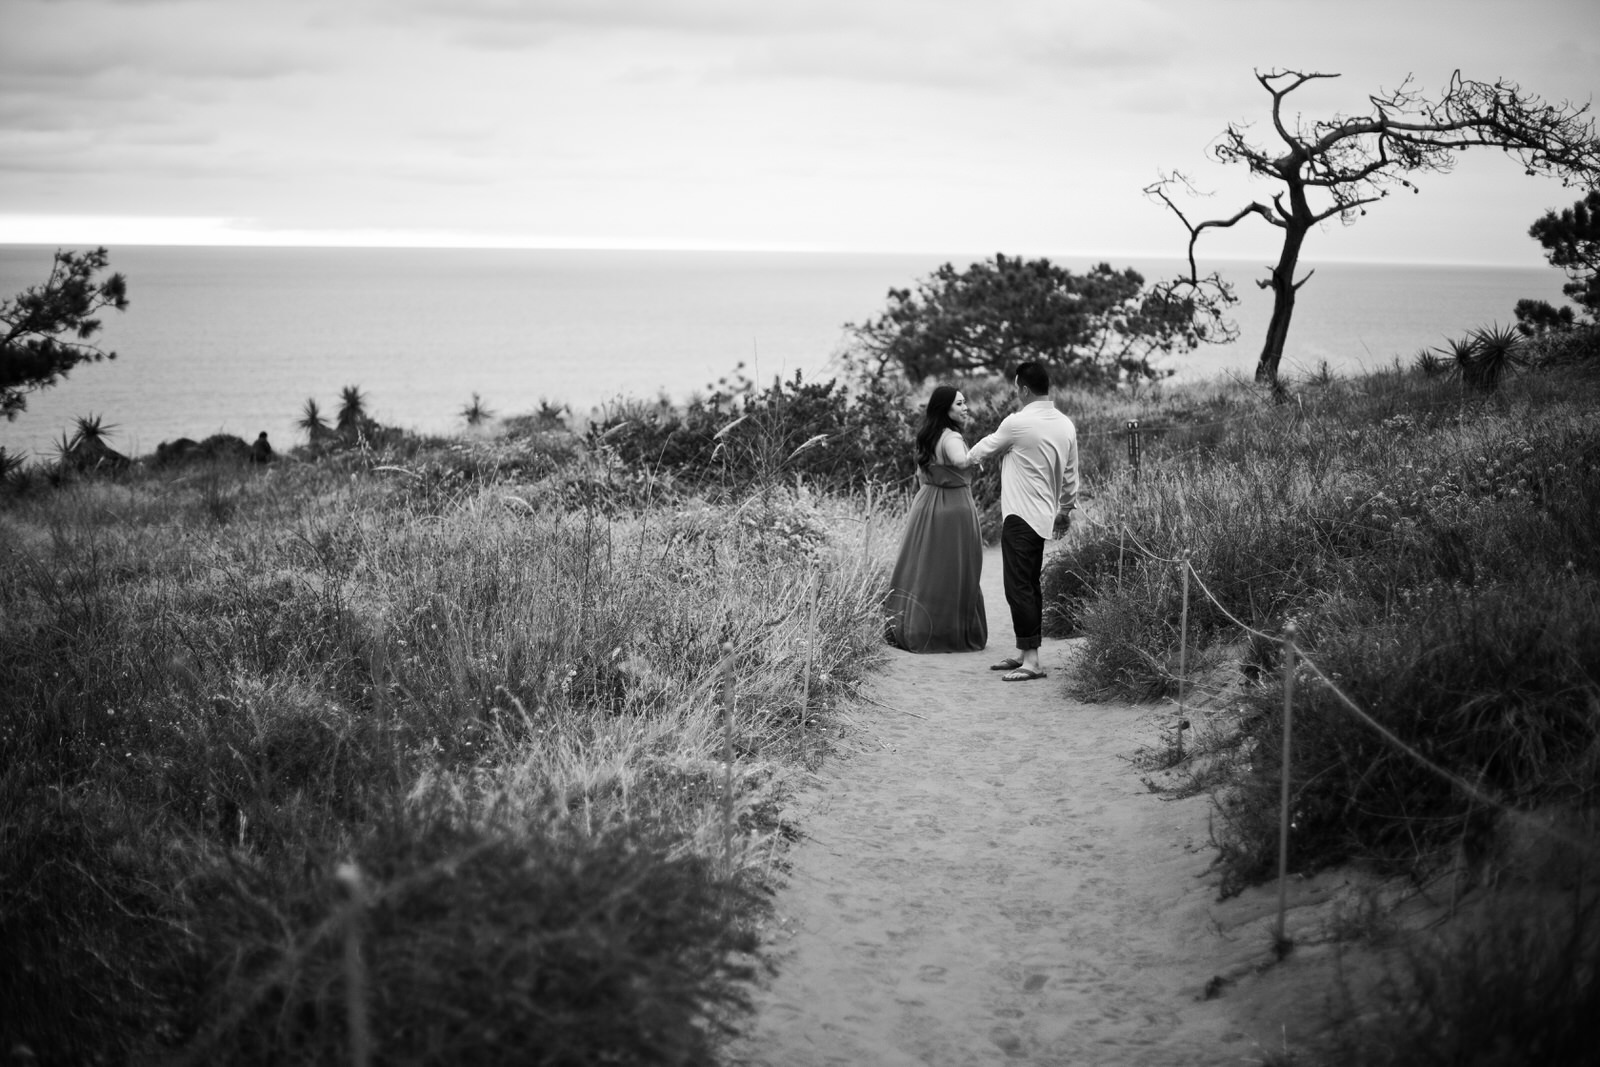 A black and white image of a man and woman walking down a beach trail